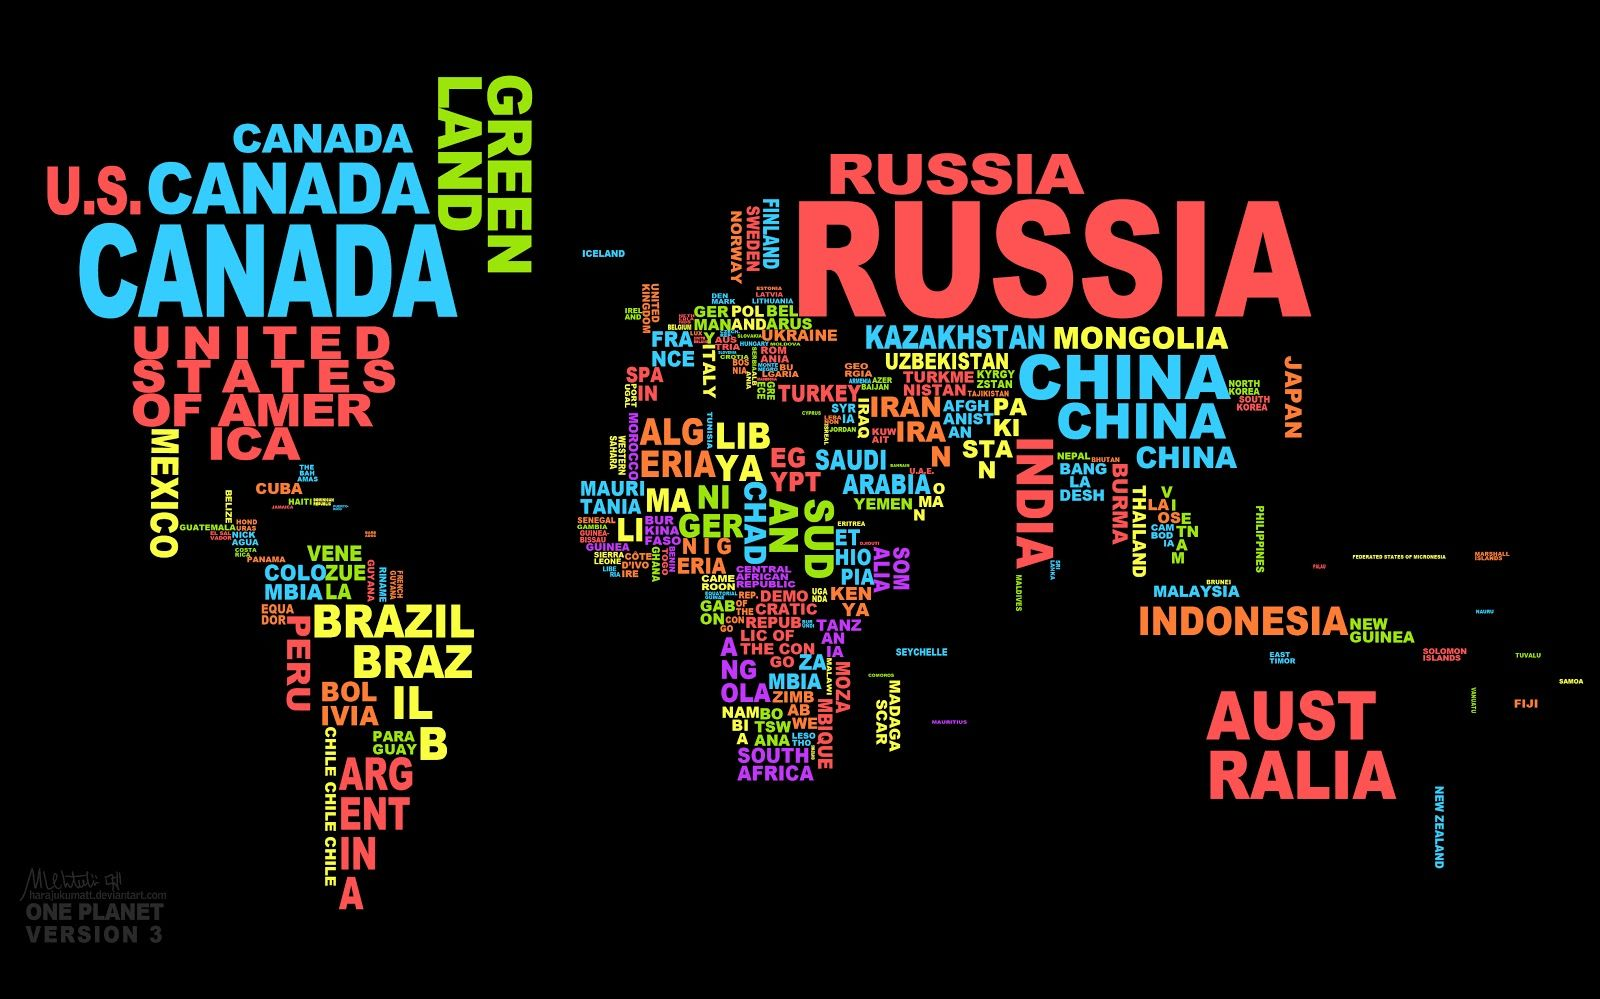 Wallpaper For World Map Using Country Name On Badooy Wallpapers - World map with country names